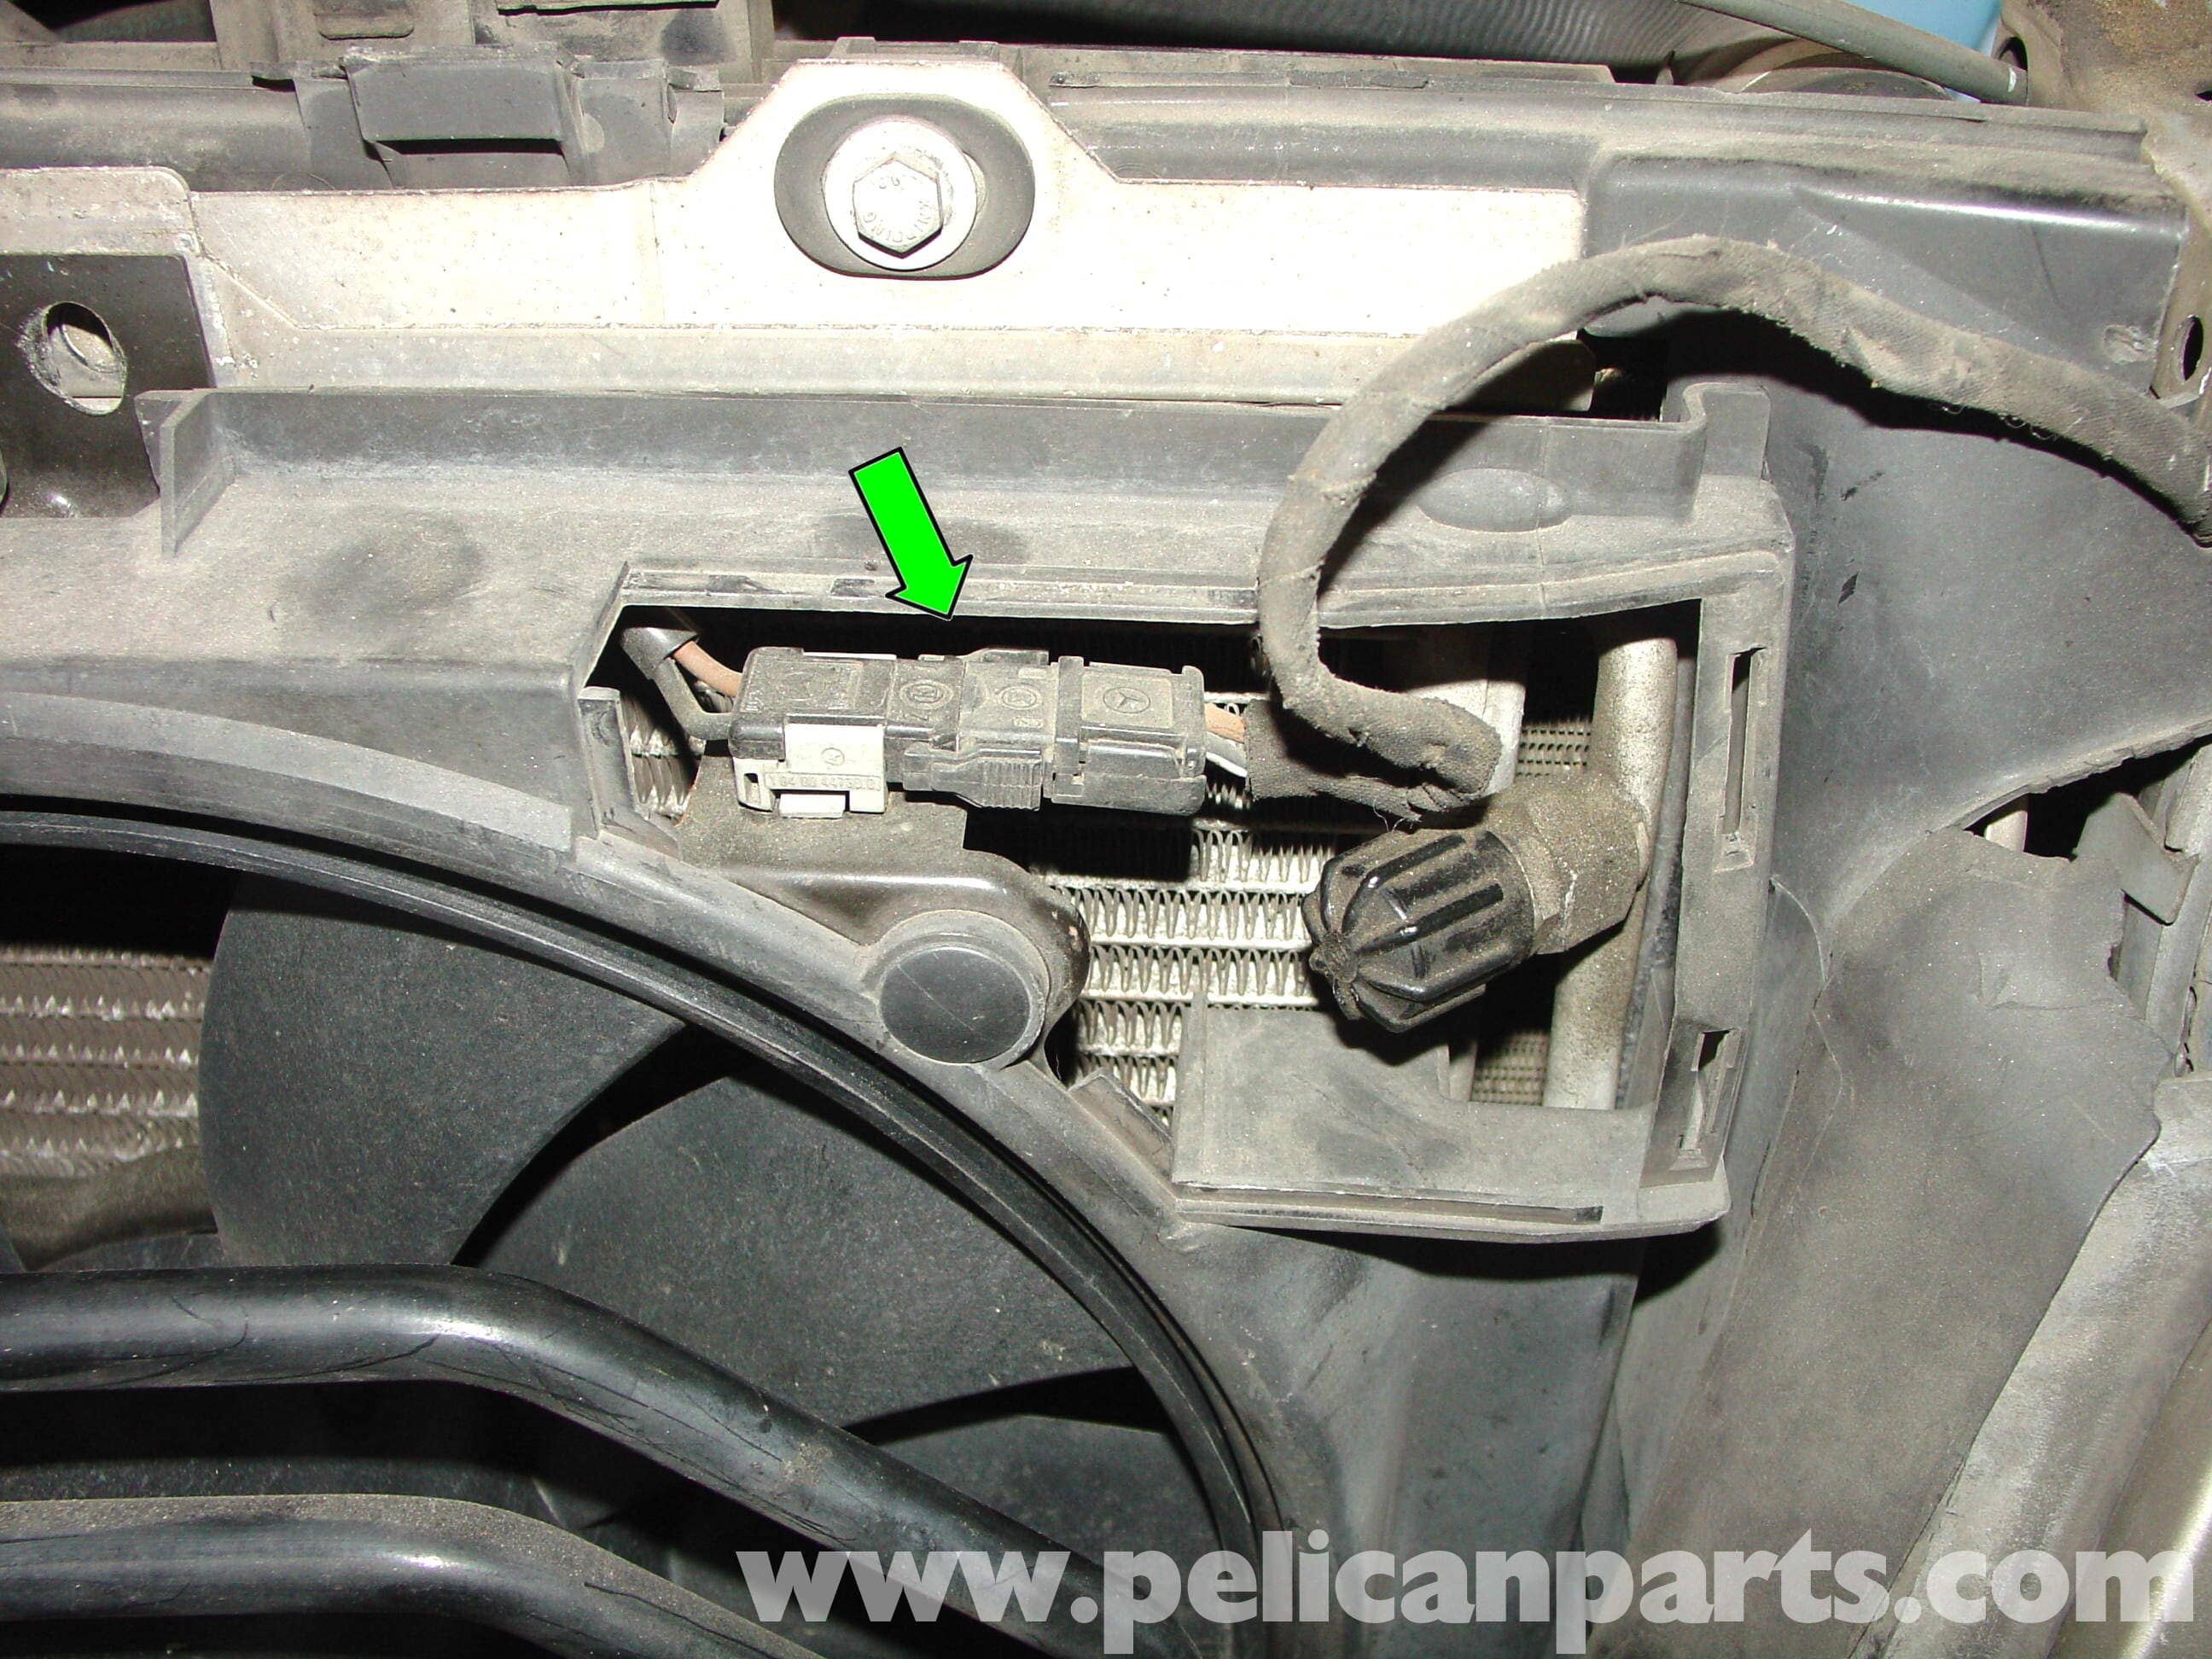 Mercedes Benz W210 Auxiliary Cooling Fan Belt Replacement 1996 03 92 Volvo 240 Fuse Box Location Large Image Extra